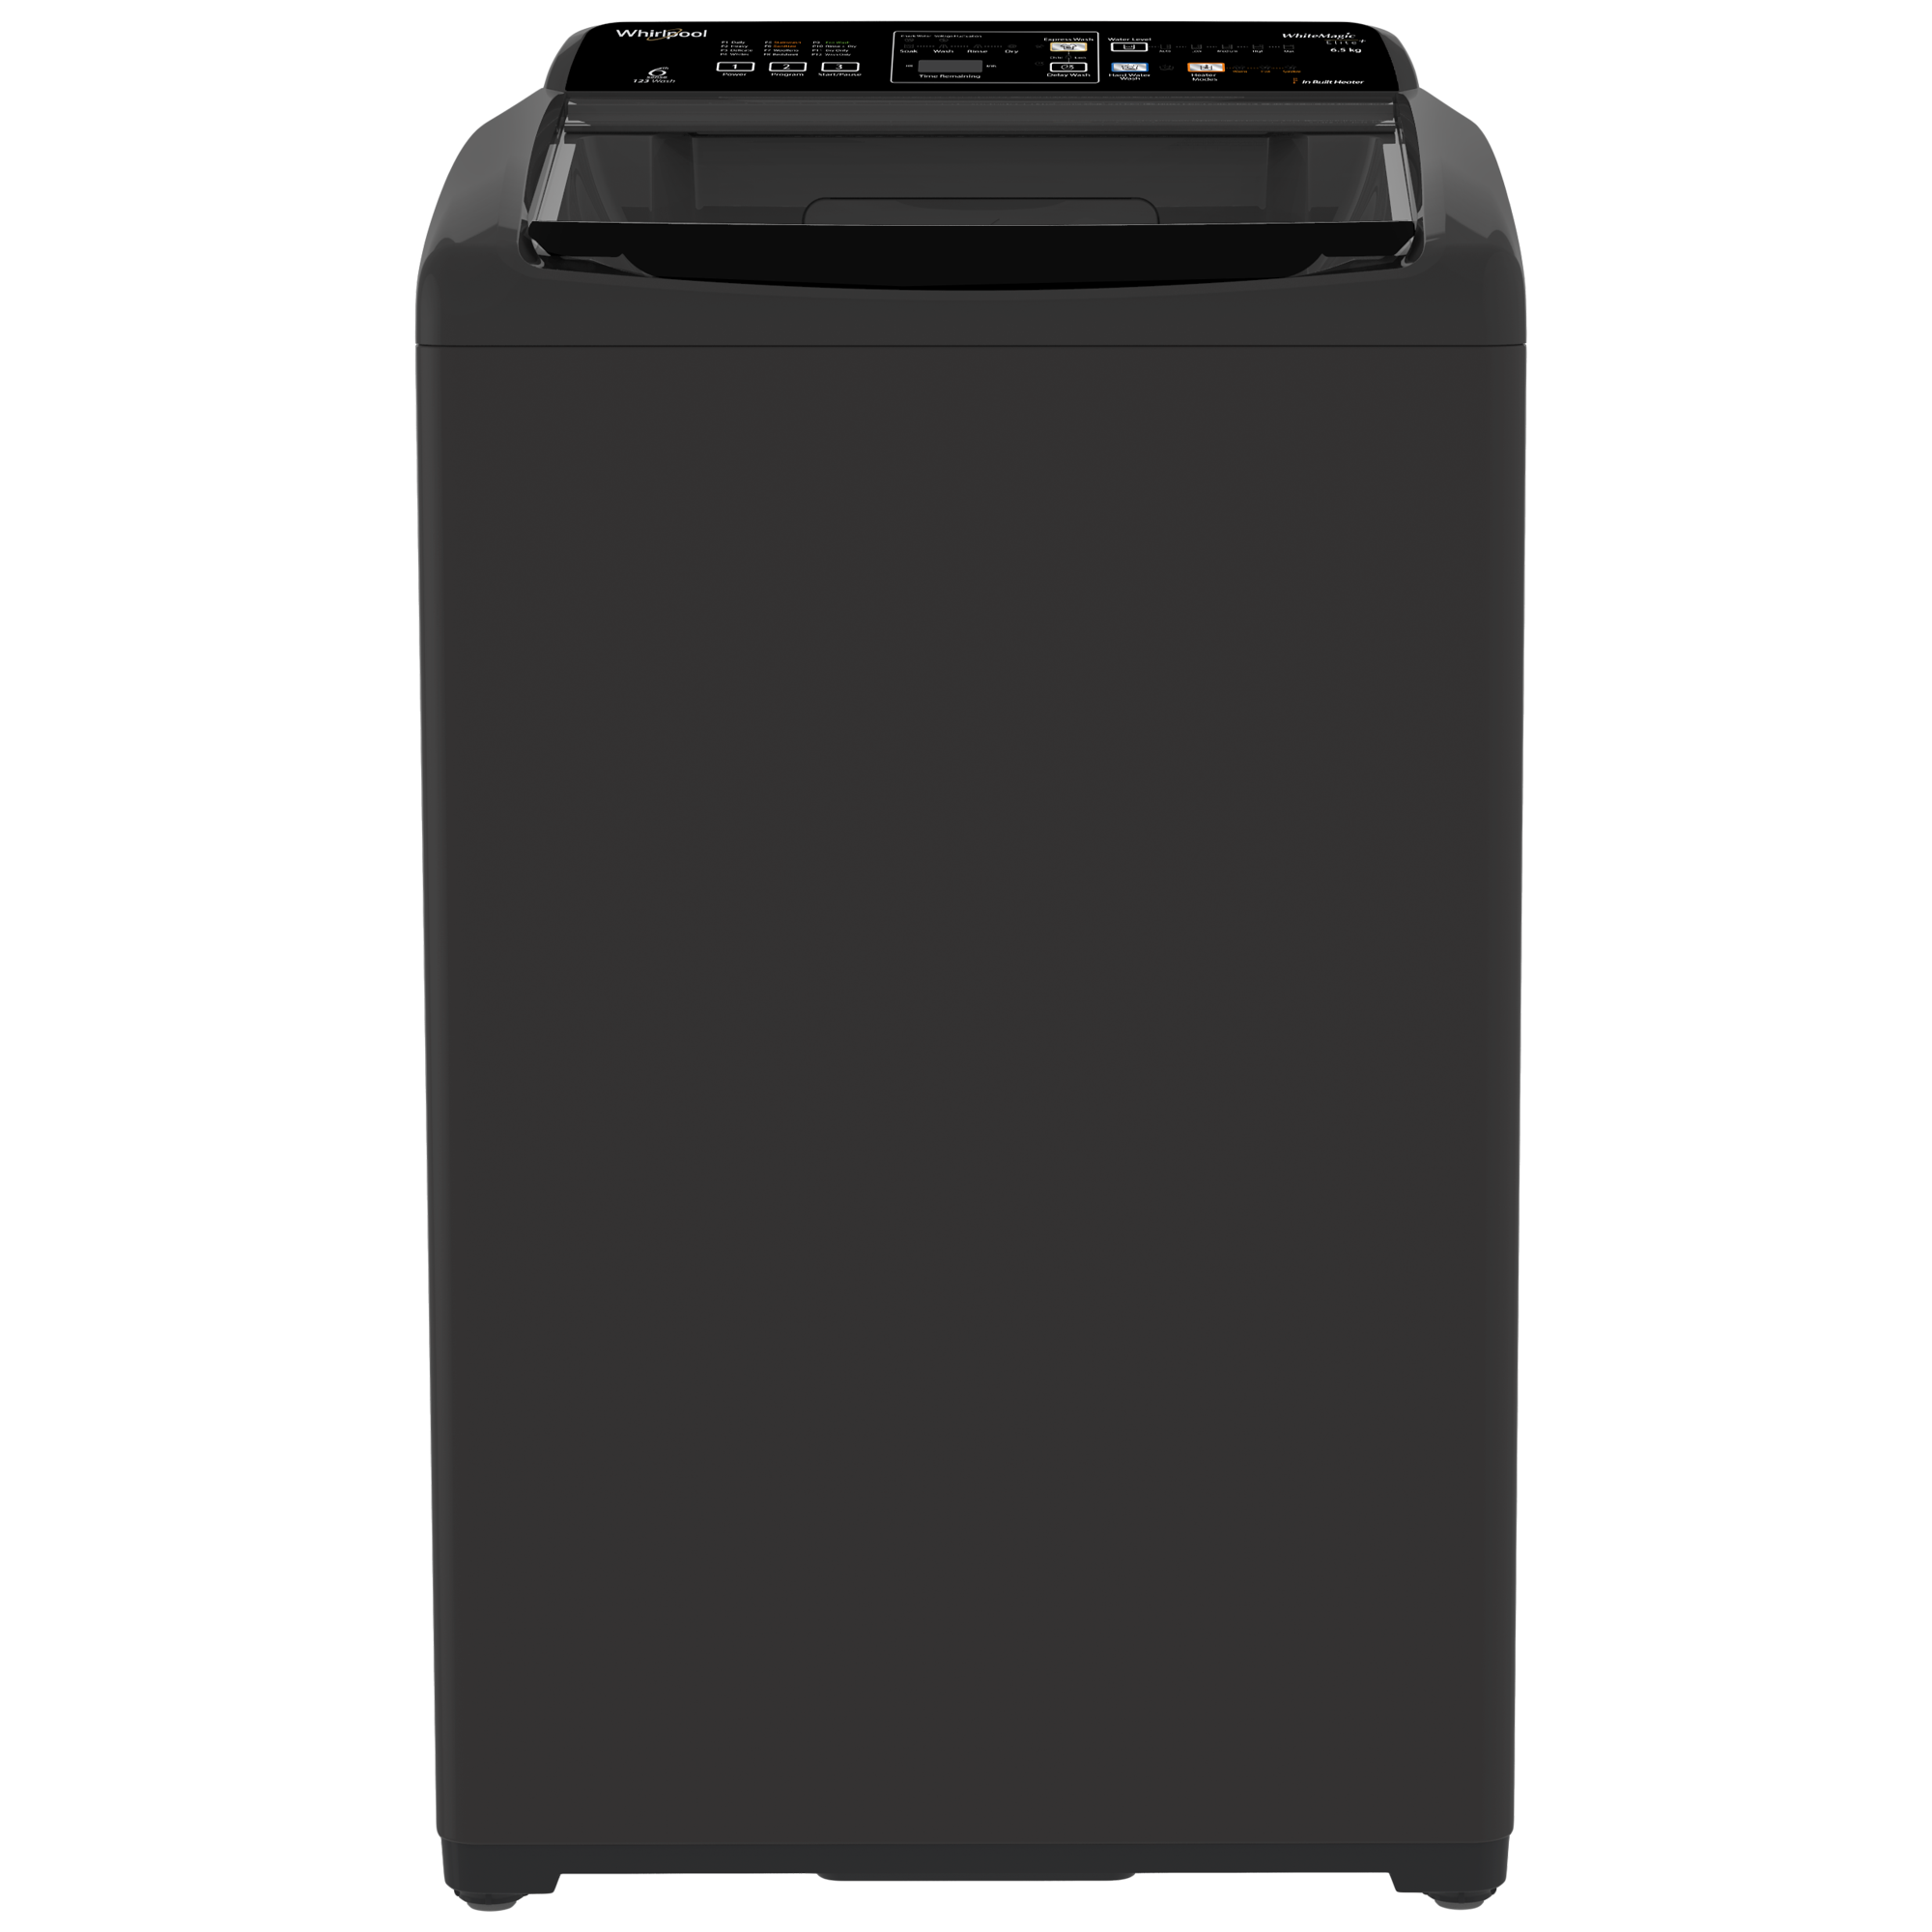 Whirlpool 6.5 kg 5 Star Fully Automatic Top Load Washing Machine (Built-In Heater, Whitemagic Elite Plus 6.5 10YMW, Grey)_1